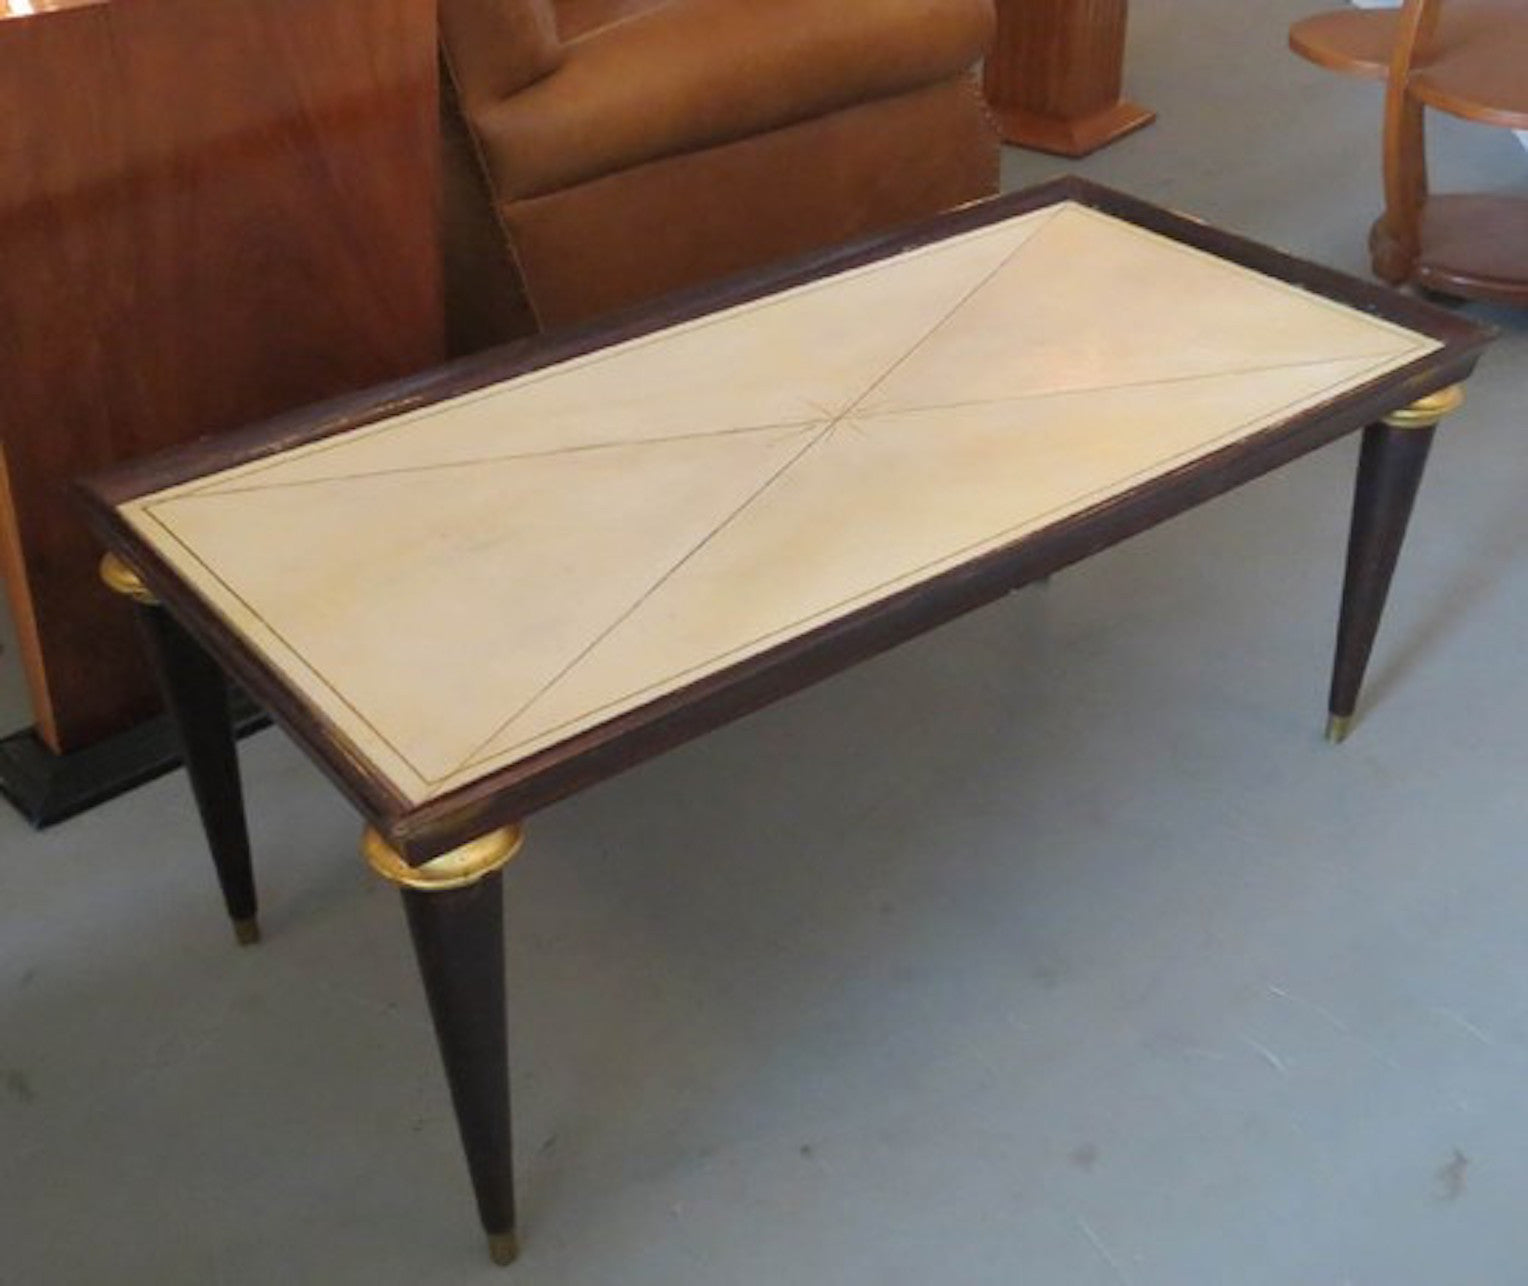 Jansen Coffee Table Maison Jansen French Art Deco Parchment Coffee Table 1 Of A Kind Nj